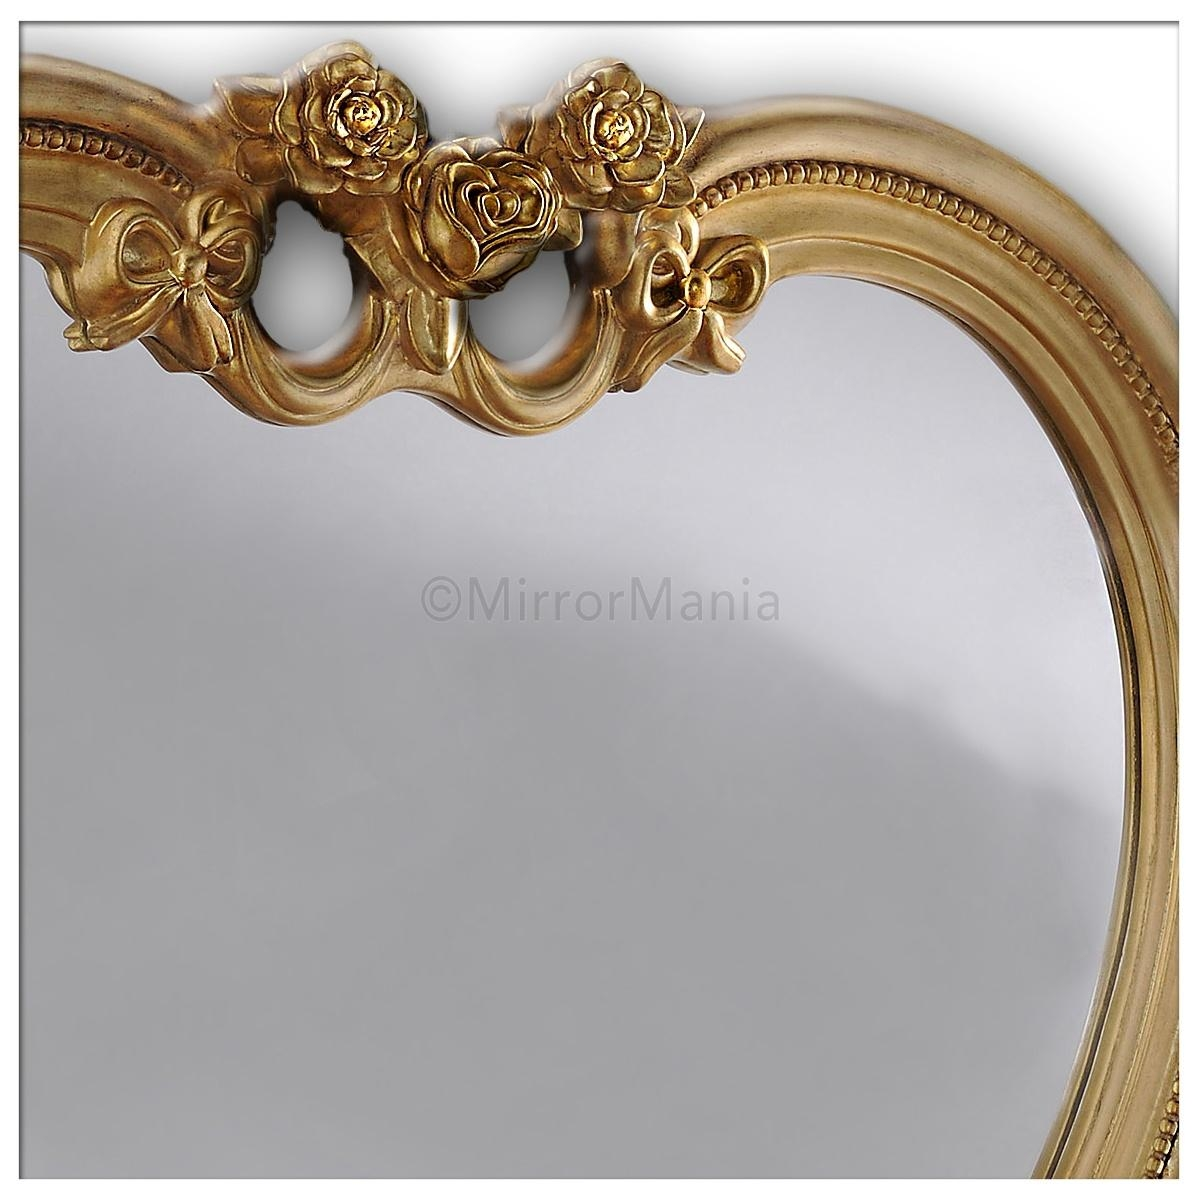 Heart Shaped Wall Mirror Gold Regarding Heart Shaped Mirrors For Walls (View 16 of 20)